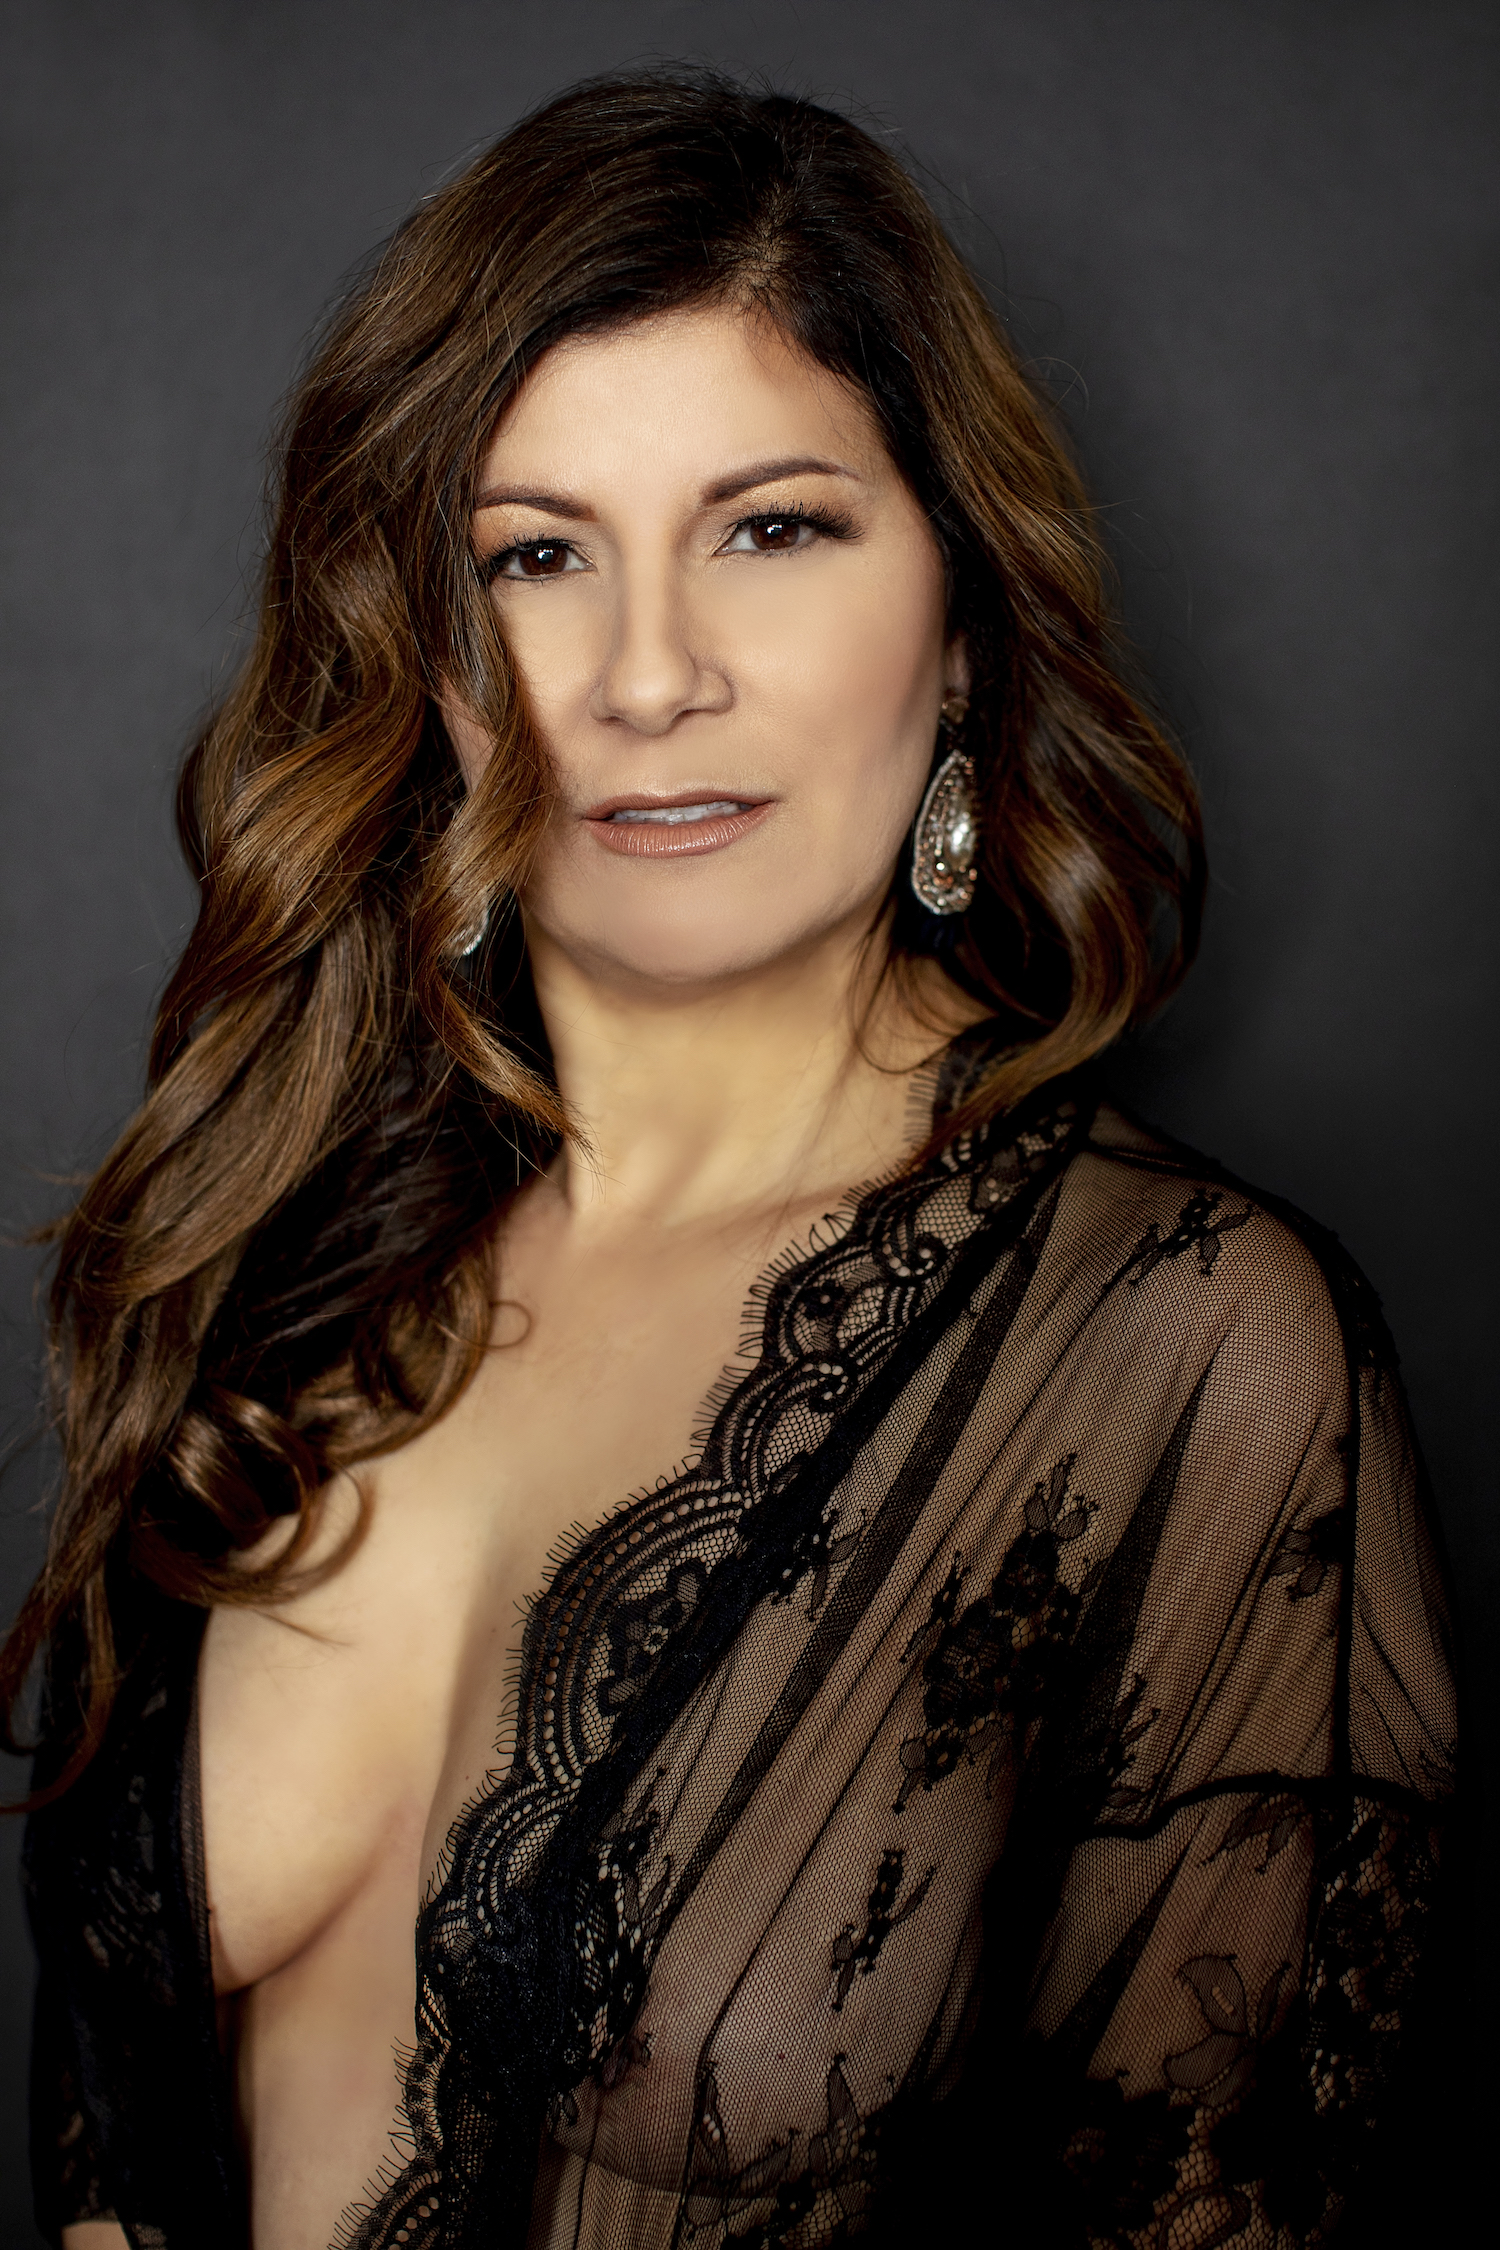 Boudoir photography of a woman in a black lace cover up.